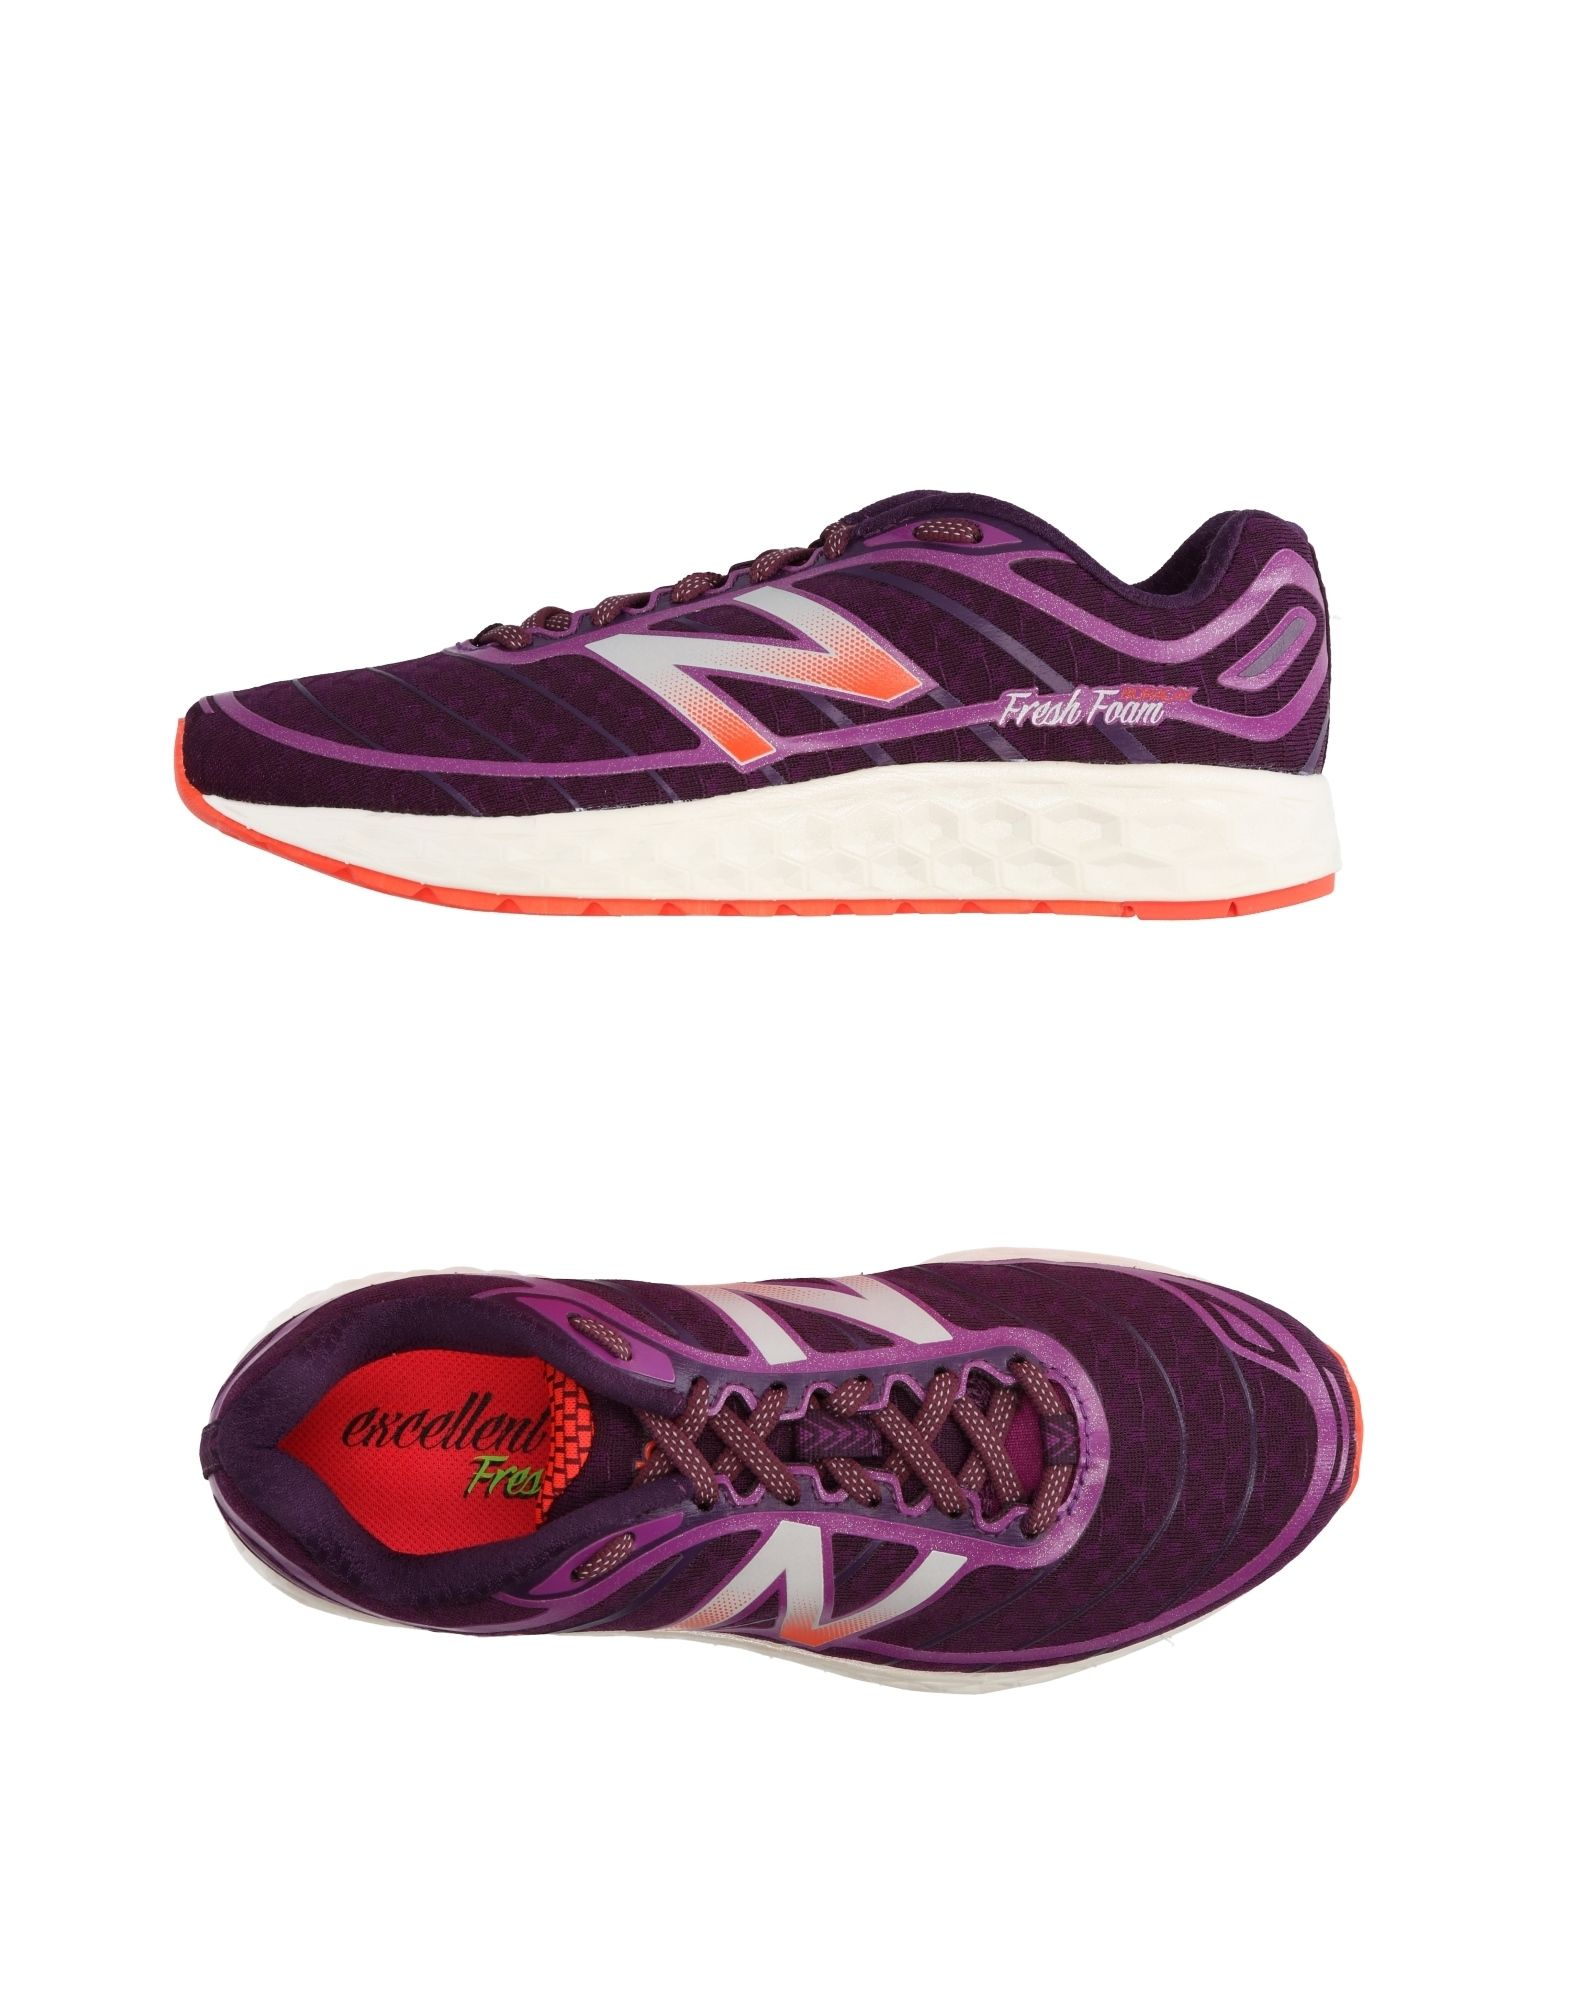 'New Balance Sneakers